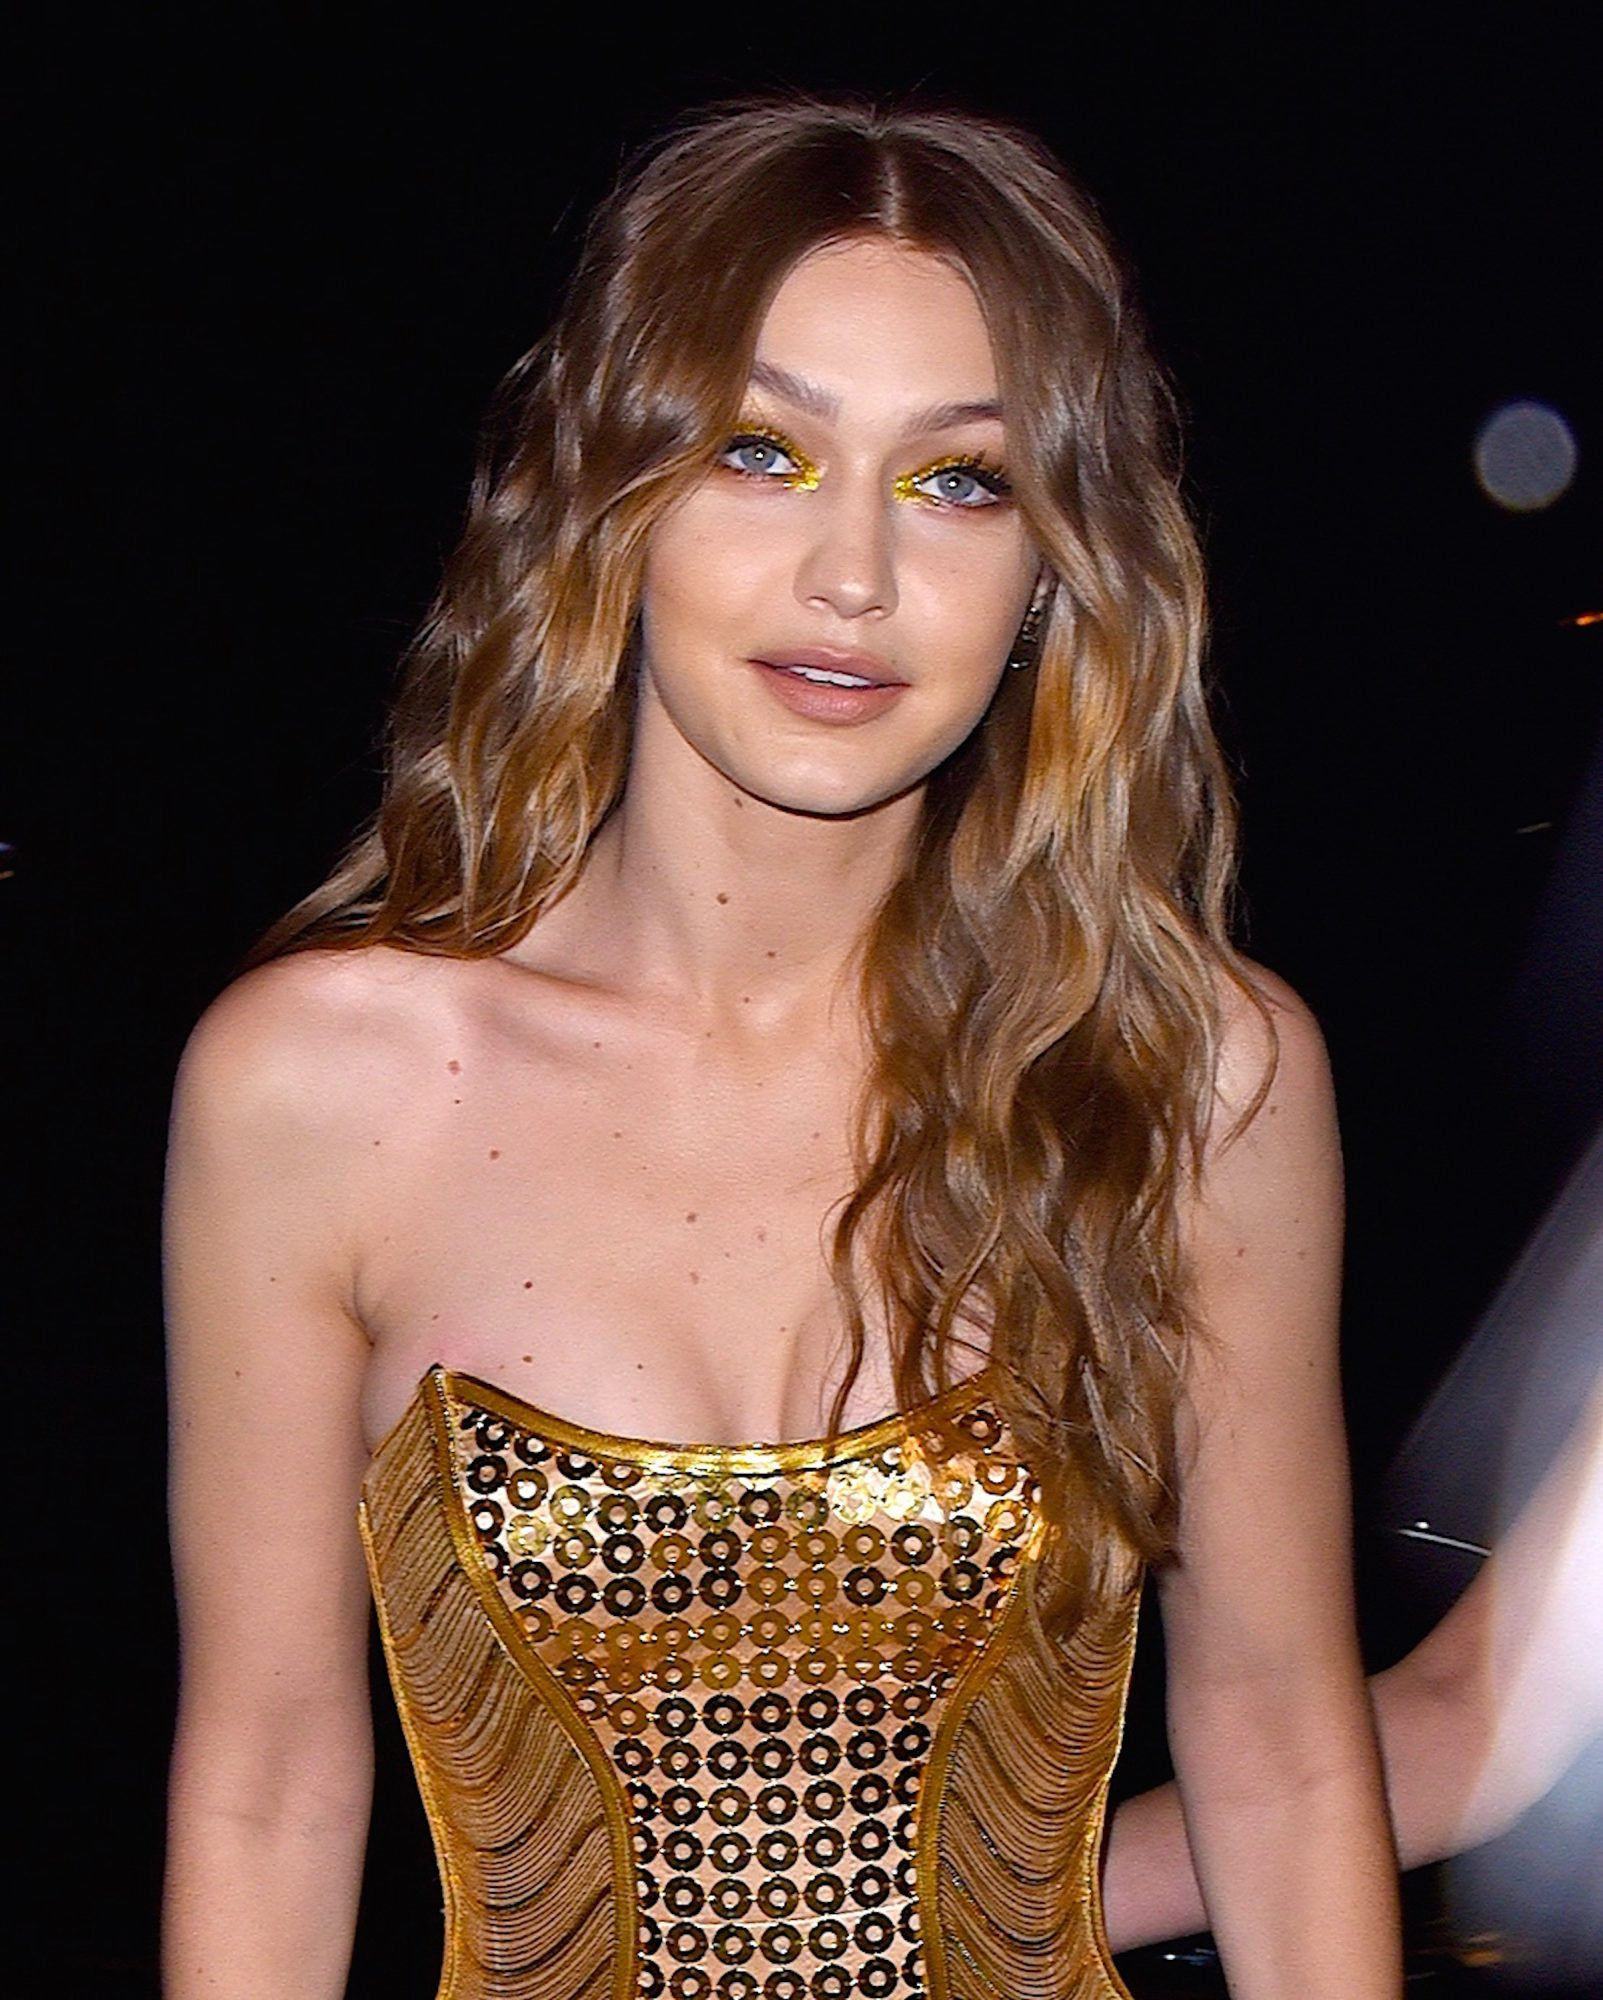 Here's How To Copy Gigi Hadid's Birthday Dress for Your Next Party